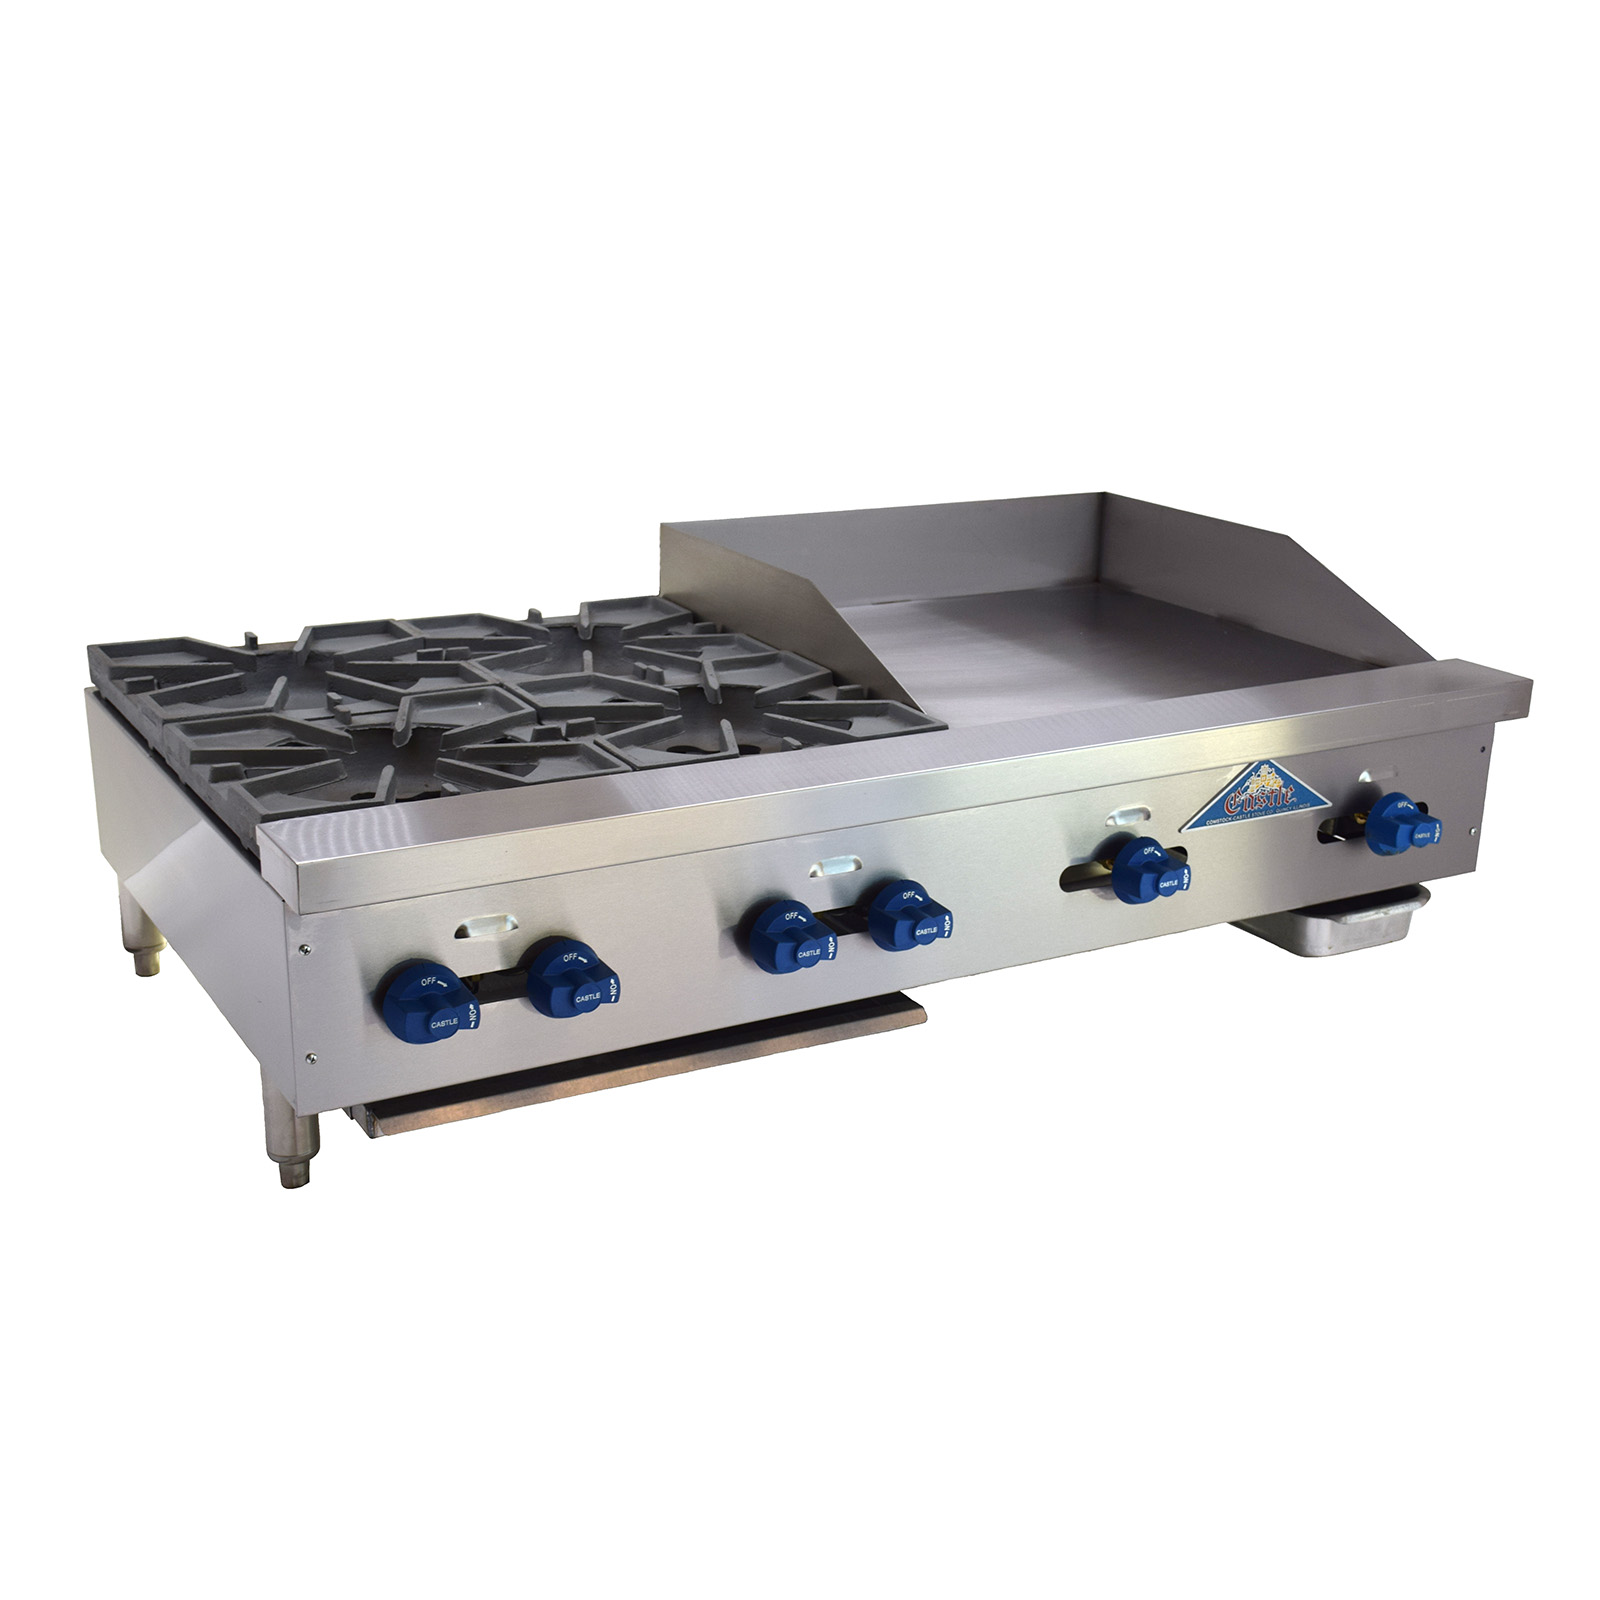 Comstock-Castle FHP48-24-2LB griddle / charbroiler, gas, countertop